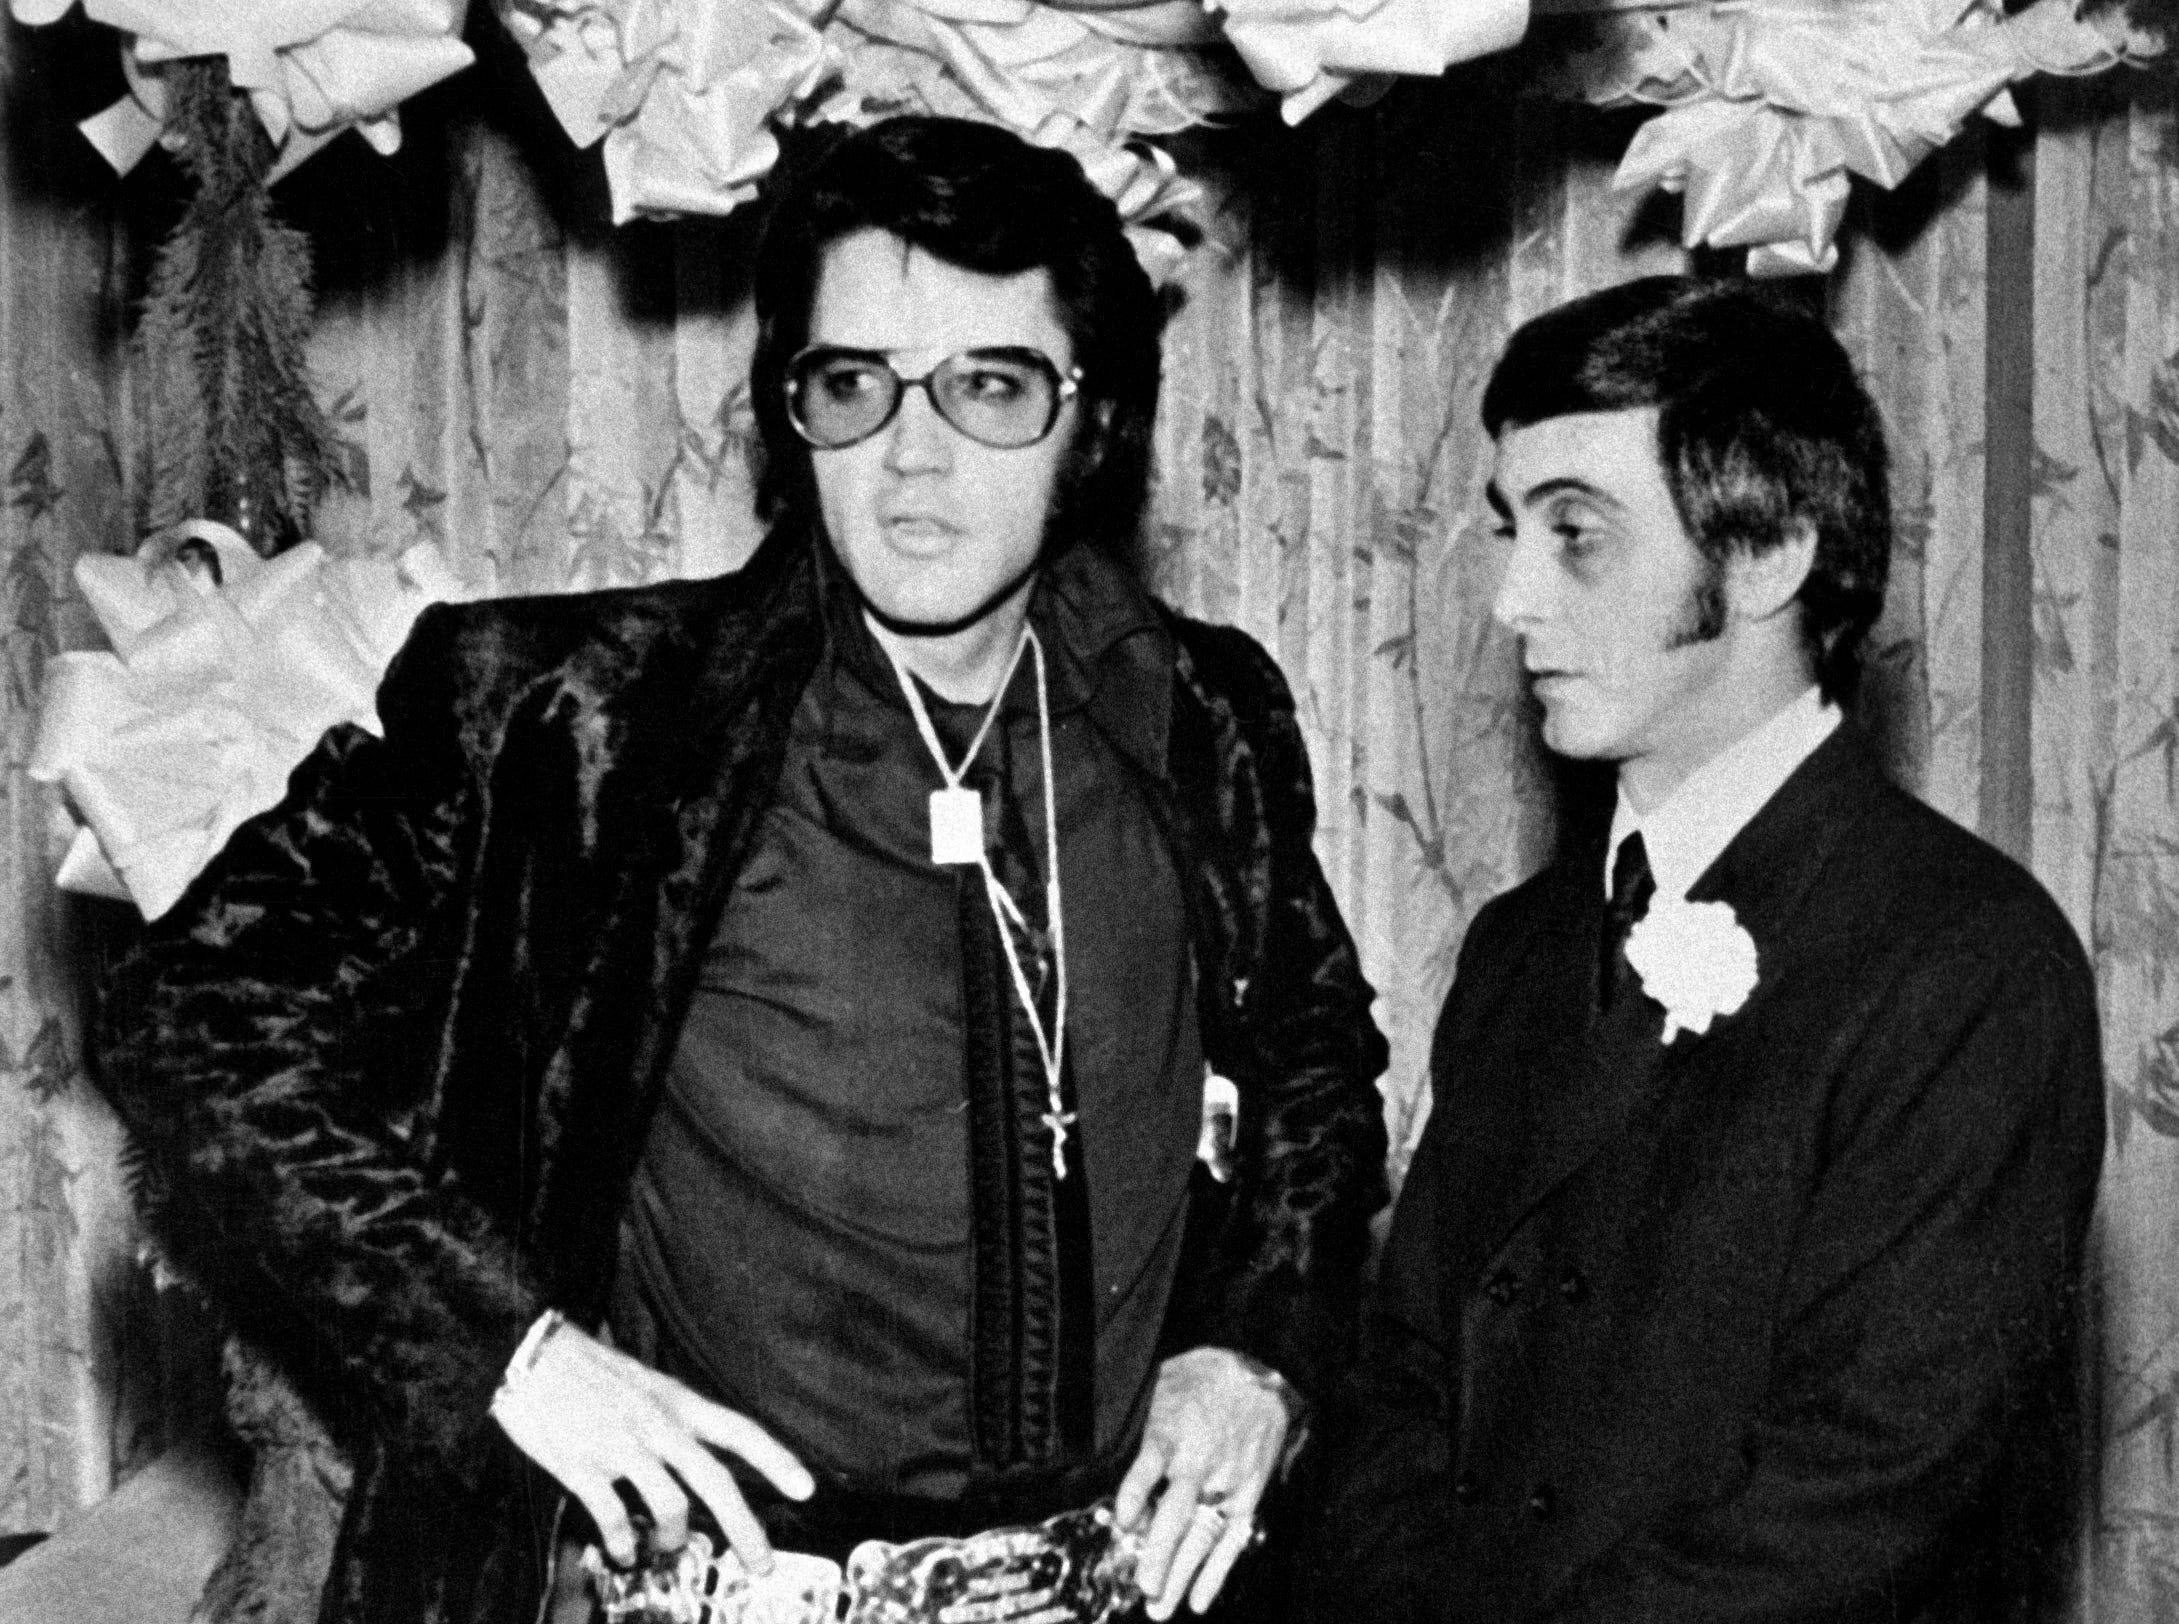 Elvis Presley stands with George Klein while serving as his best man at his wedding on December 5, 1970.